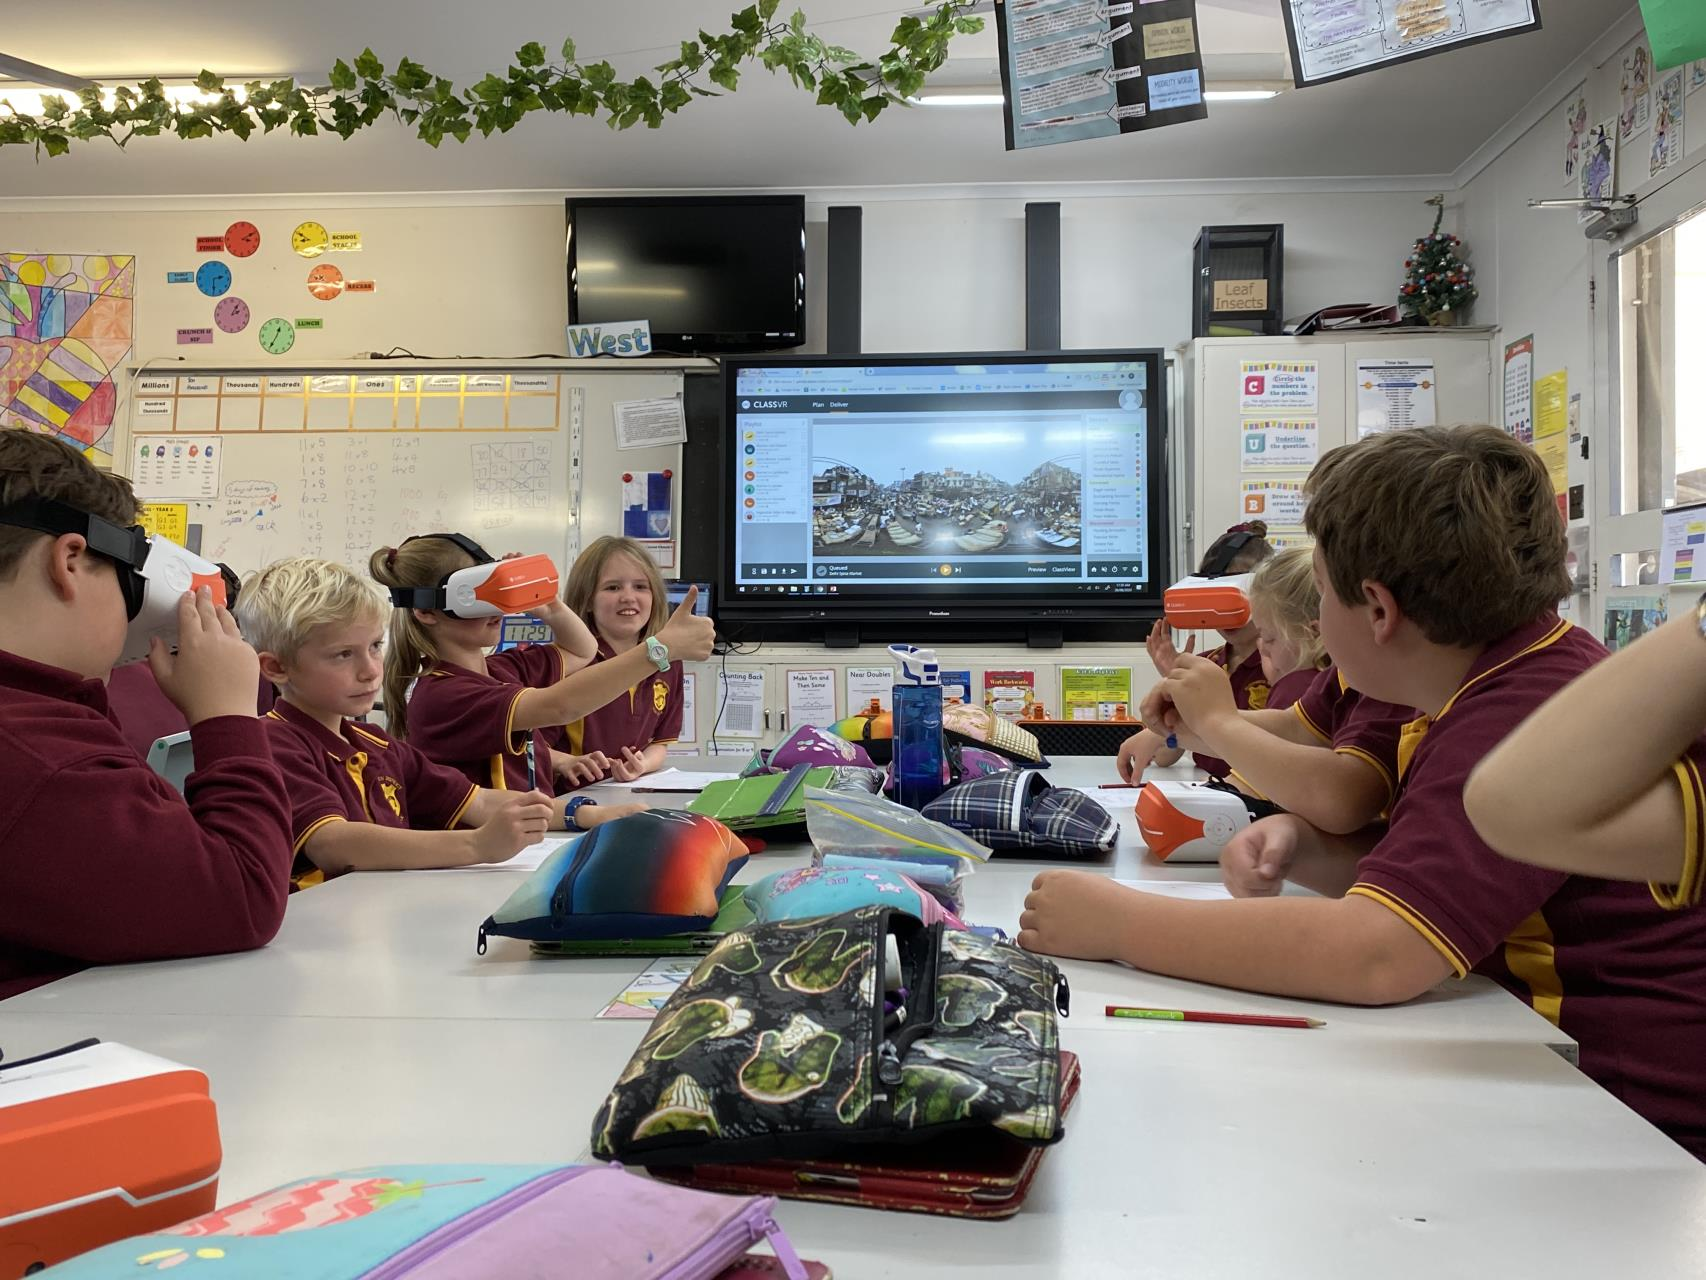 Students and the wider community benefit through the Shire of Narembeen